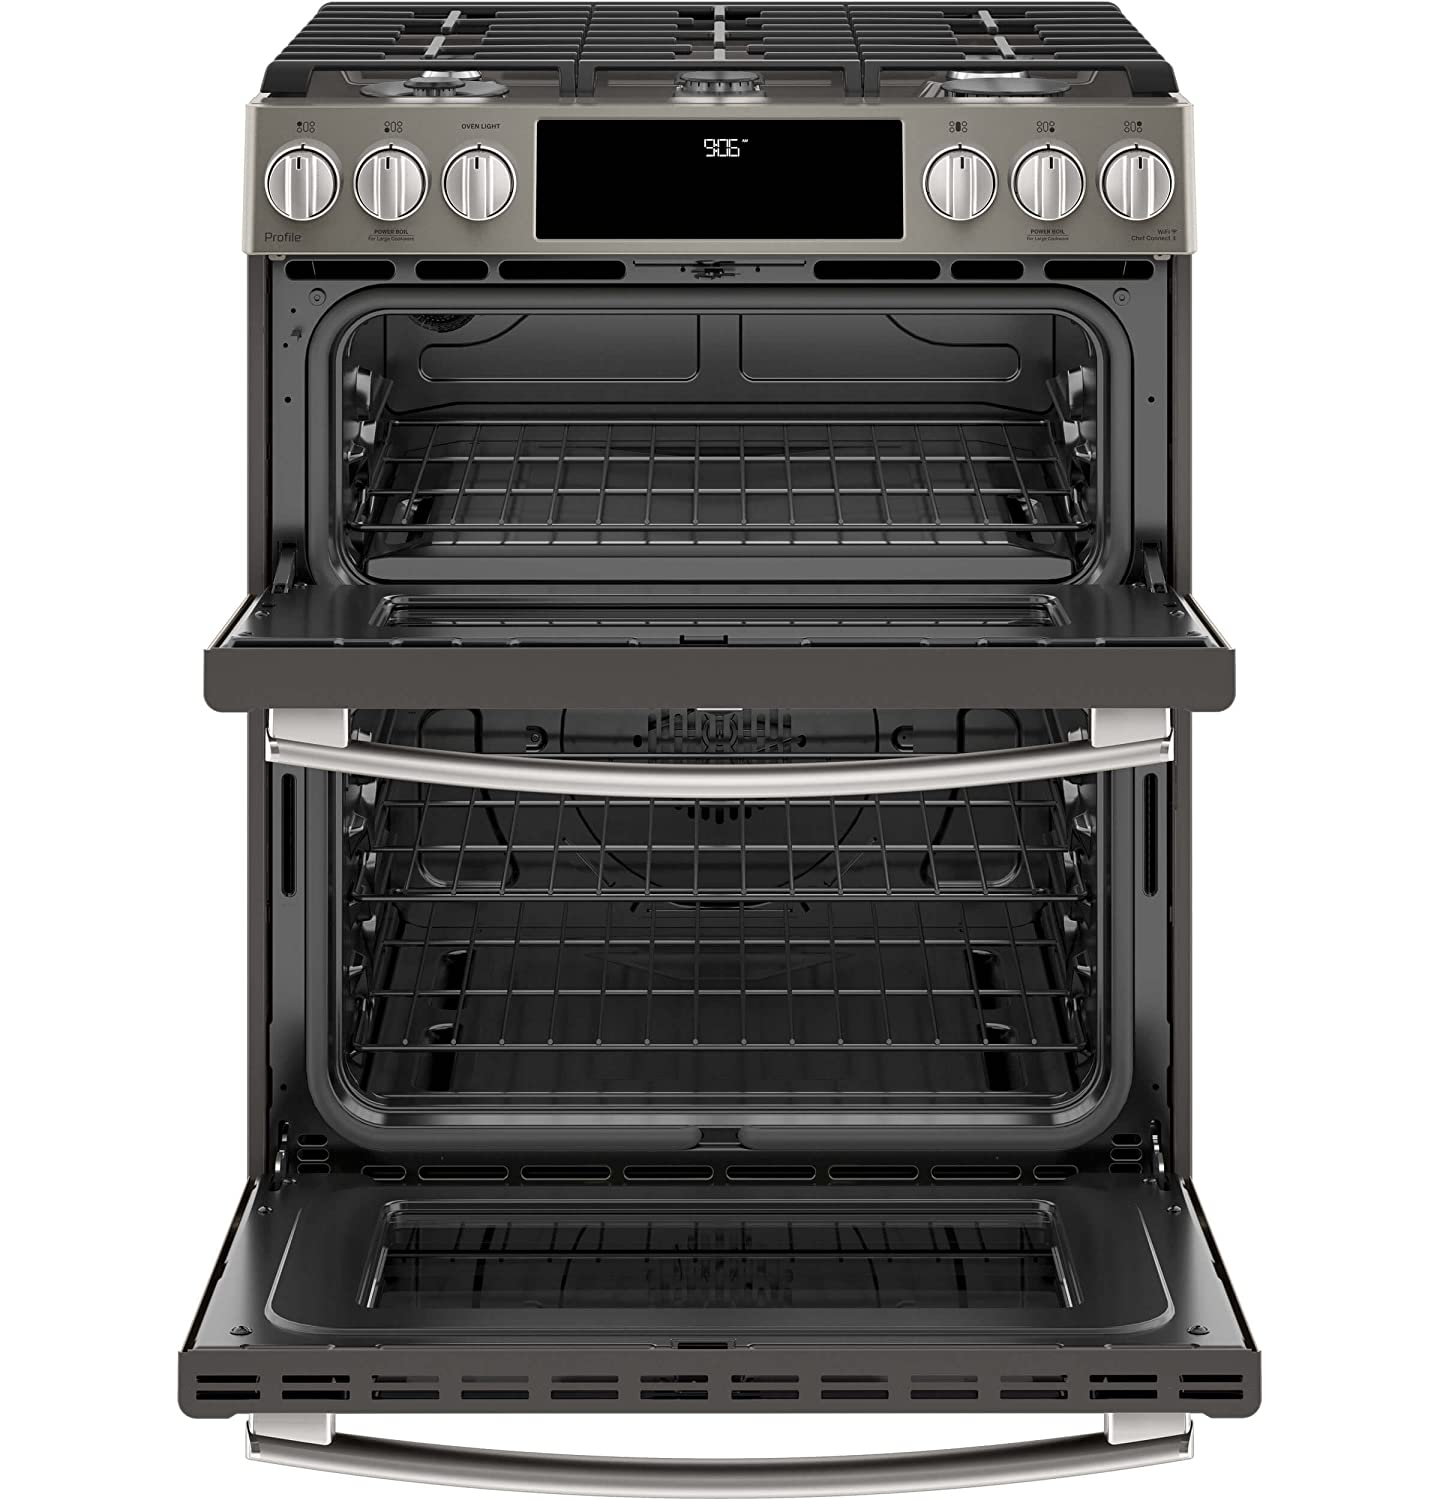 Amazon Com Ge Profile Pgs960eeles 30 Inch Slide In Gas Range With Sealed Burner Cooktop 6 7 Cu Ft Primary Oven Capacity In Slate Appliances